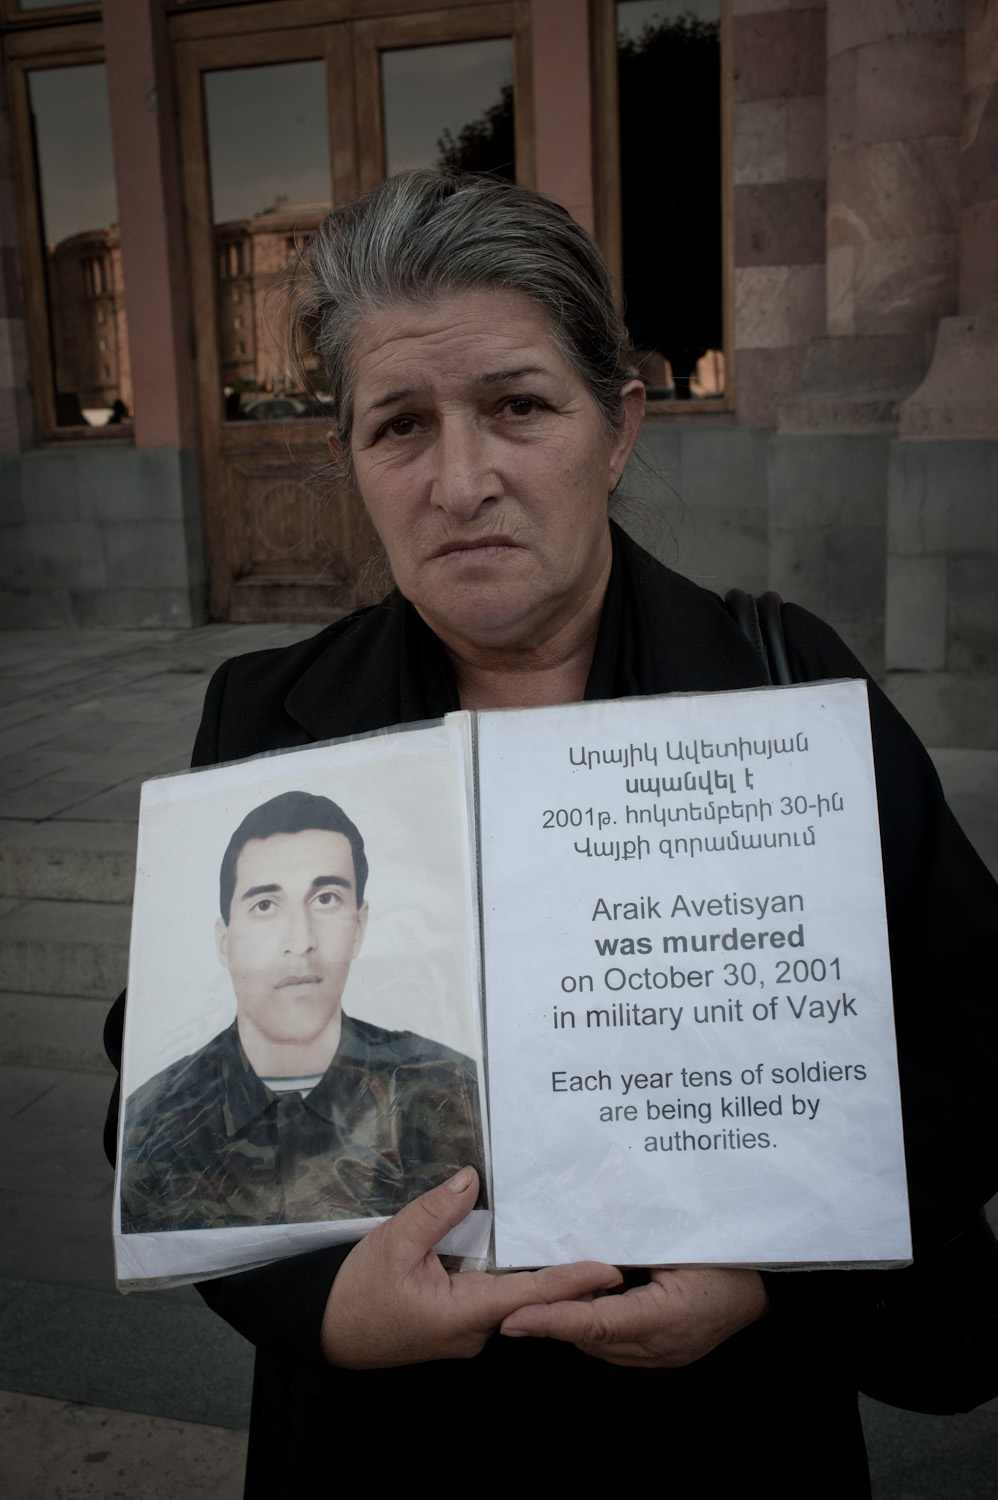 Anahit Avedisyan's son Araik was killed in 2001 - shot point blank in the head. The Avedisyan family believes that Araik's battalion commander while drunk, shot Araik for paying him only half of the $100 he had demanded for allowing Araik to take leave to visit his family.